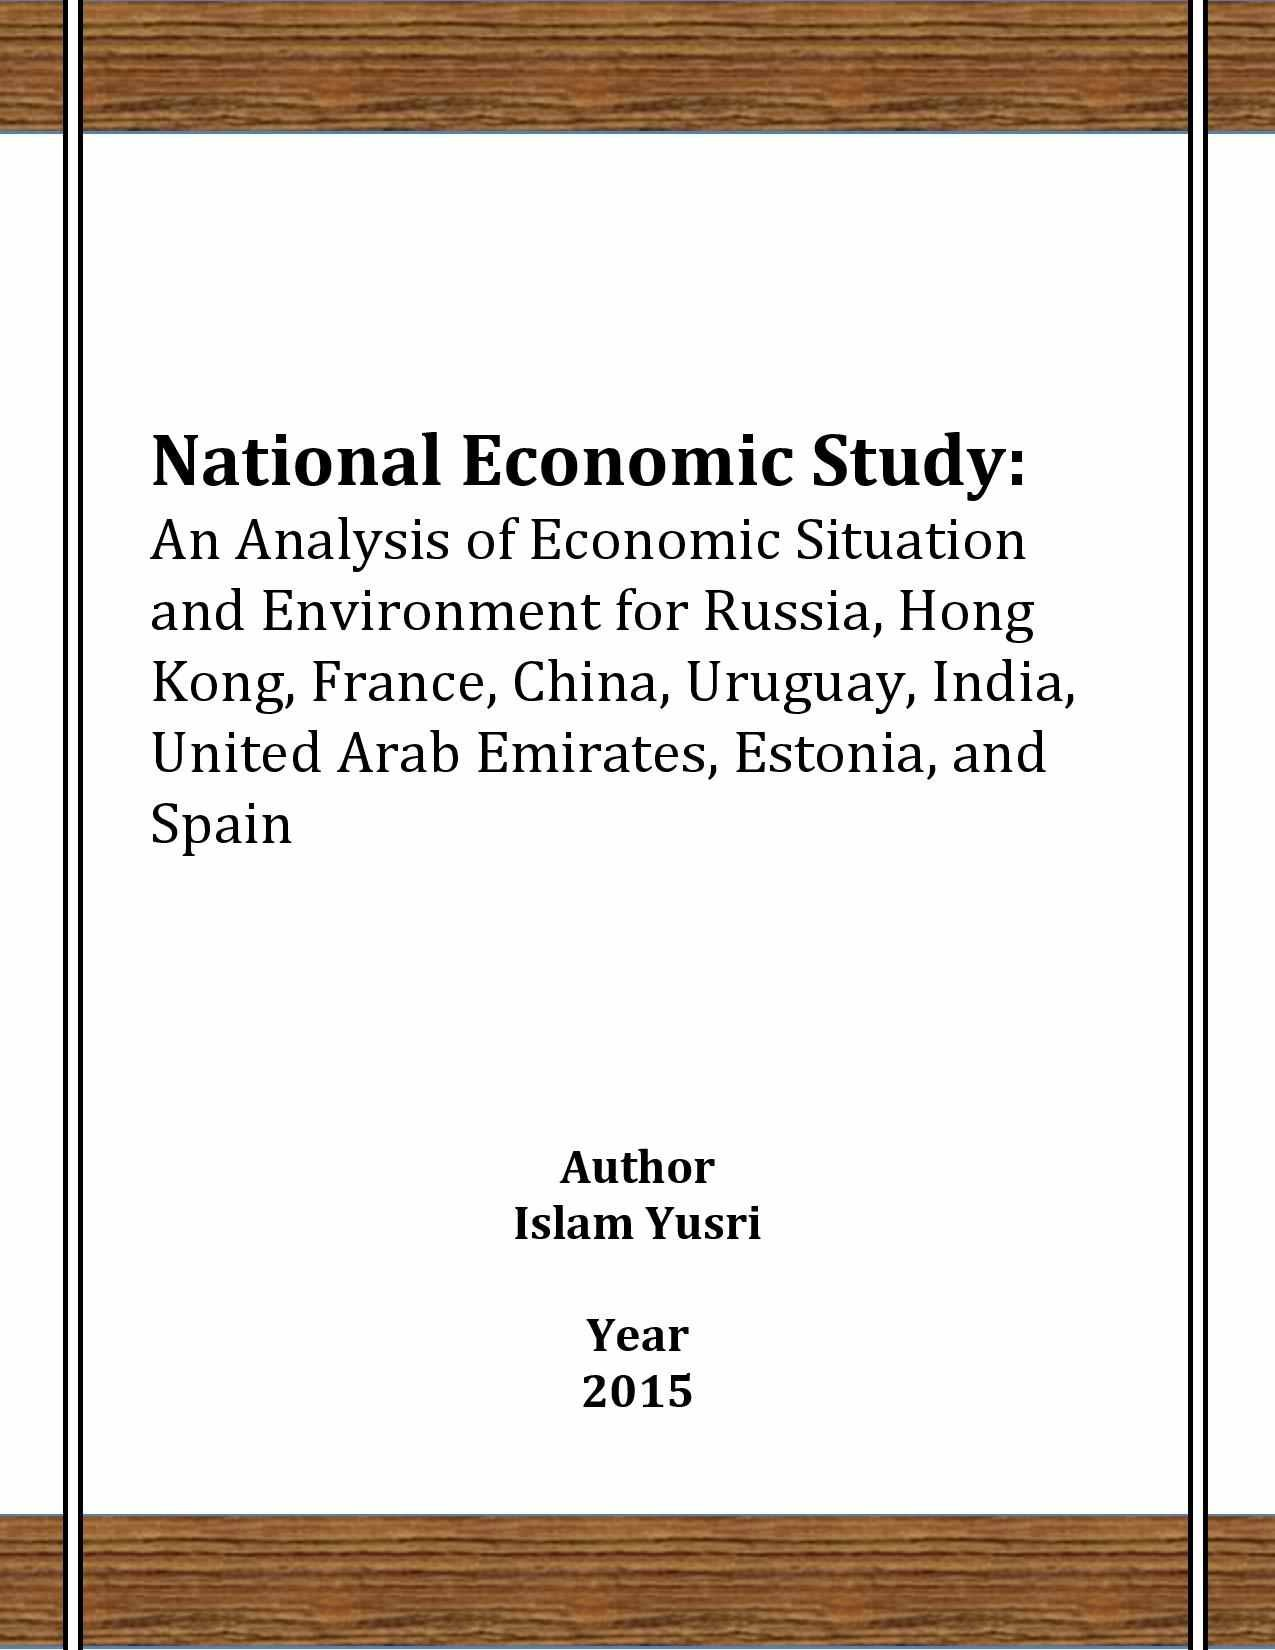 National Economic Study: An Analysis of Economic Situation and Environment for Russia, Hong Kong, France, China, Uruguay, India, United Arab Emirates, Estonia, and Spain (Researchers of Egypt Book 1)